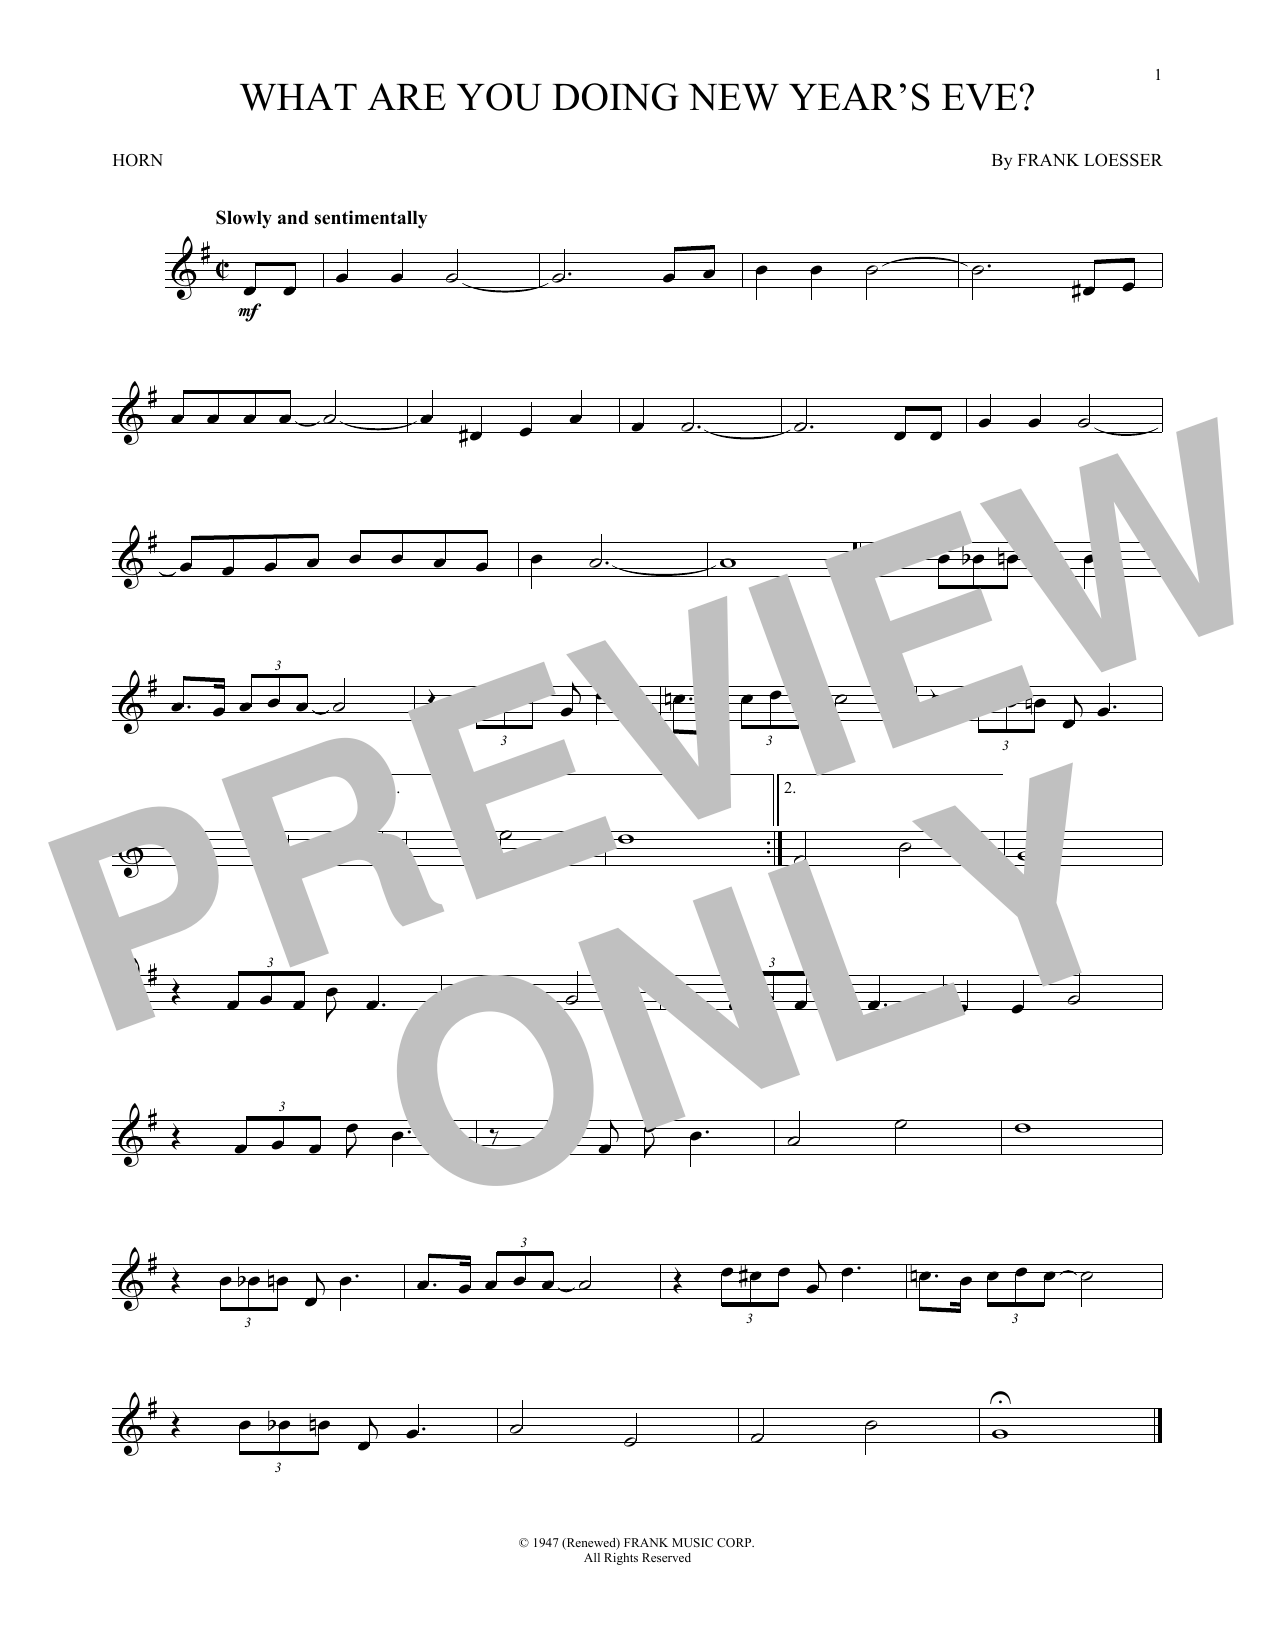 What Are You Doing New Year's Eve? (French Horn Solo)